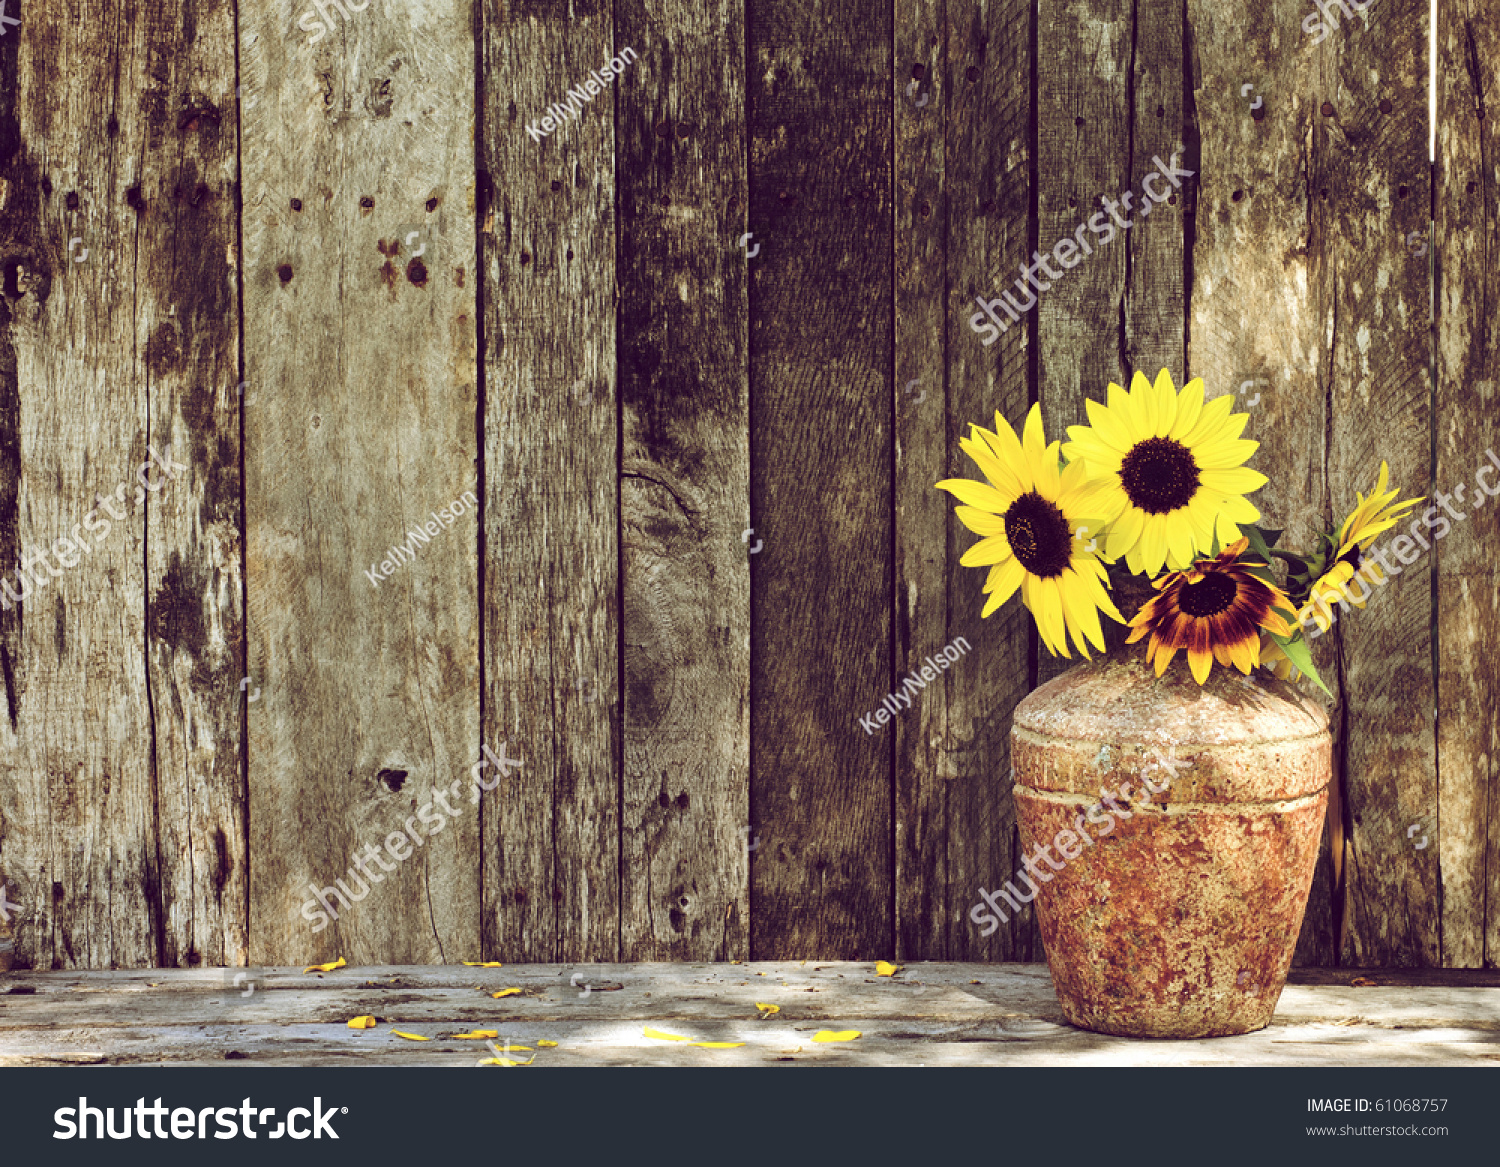 Cute Rustic Fall Wallpapers Sunflowers In A Vase On A Rustic Grunge Background With